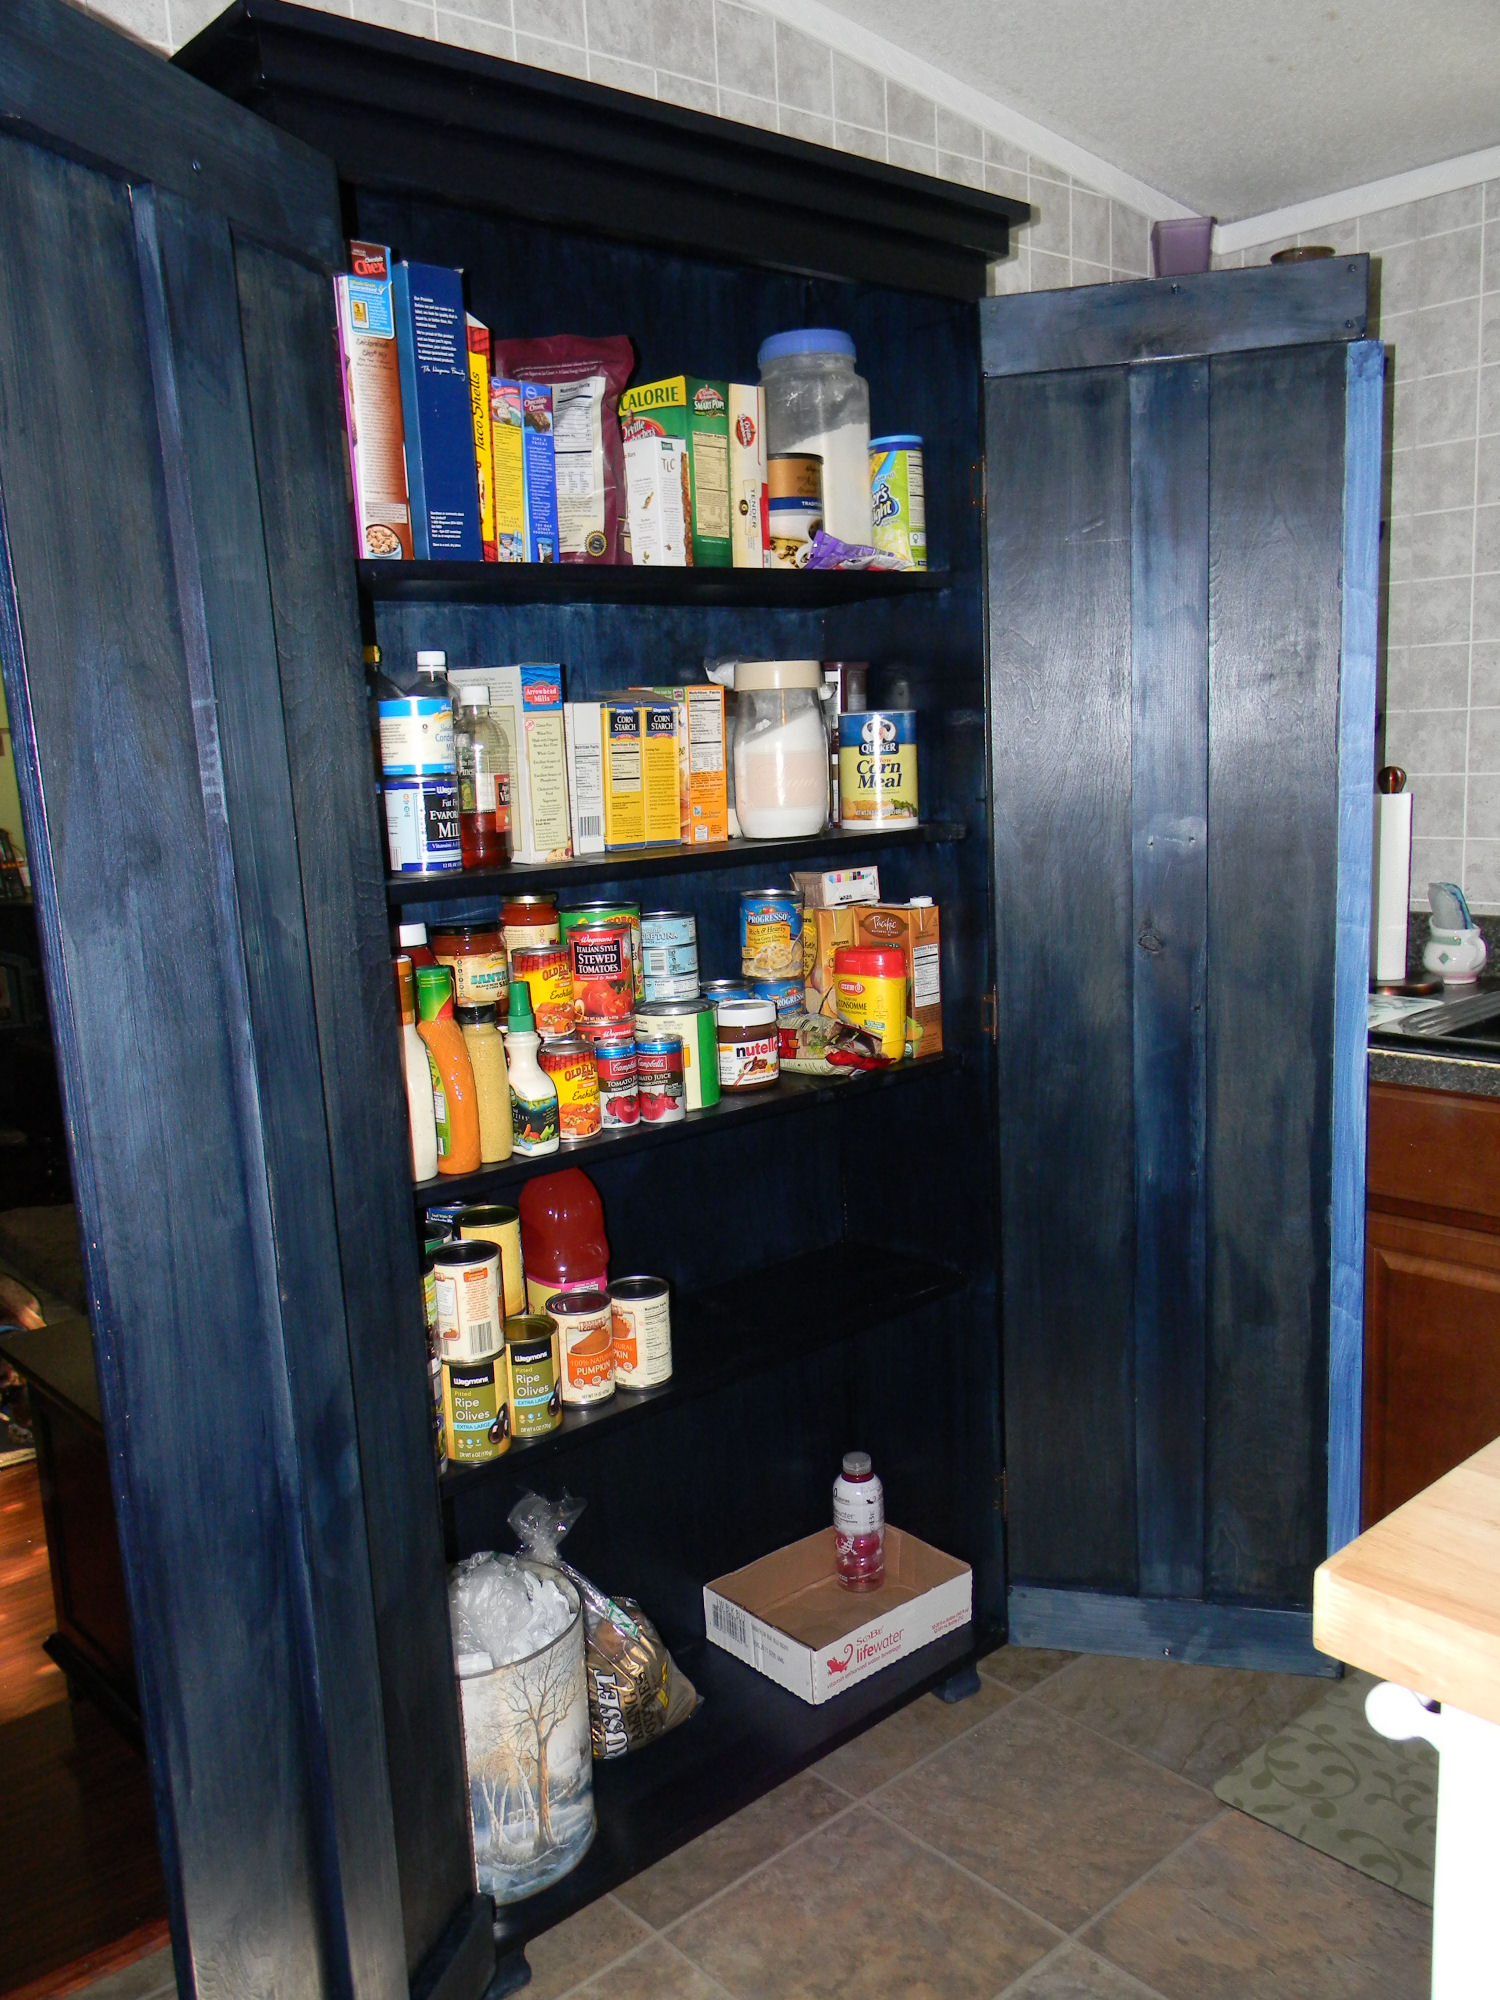 Magnificent Simplest Armoire as Kitchen Pantry DIY 1500 x 2000 · 538 kB · jpeg